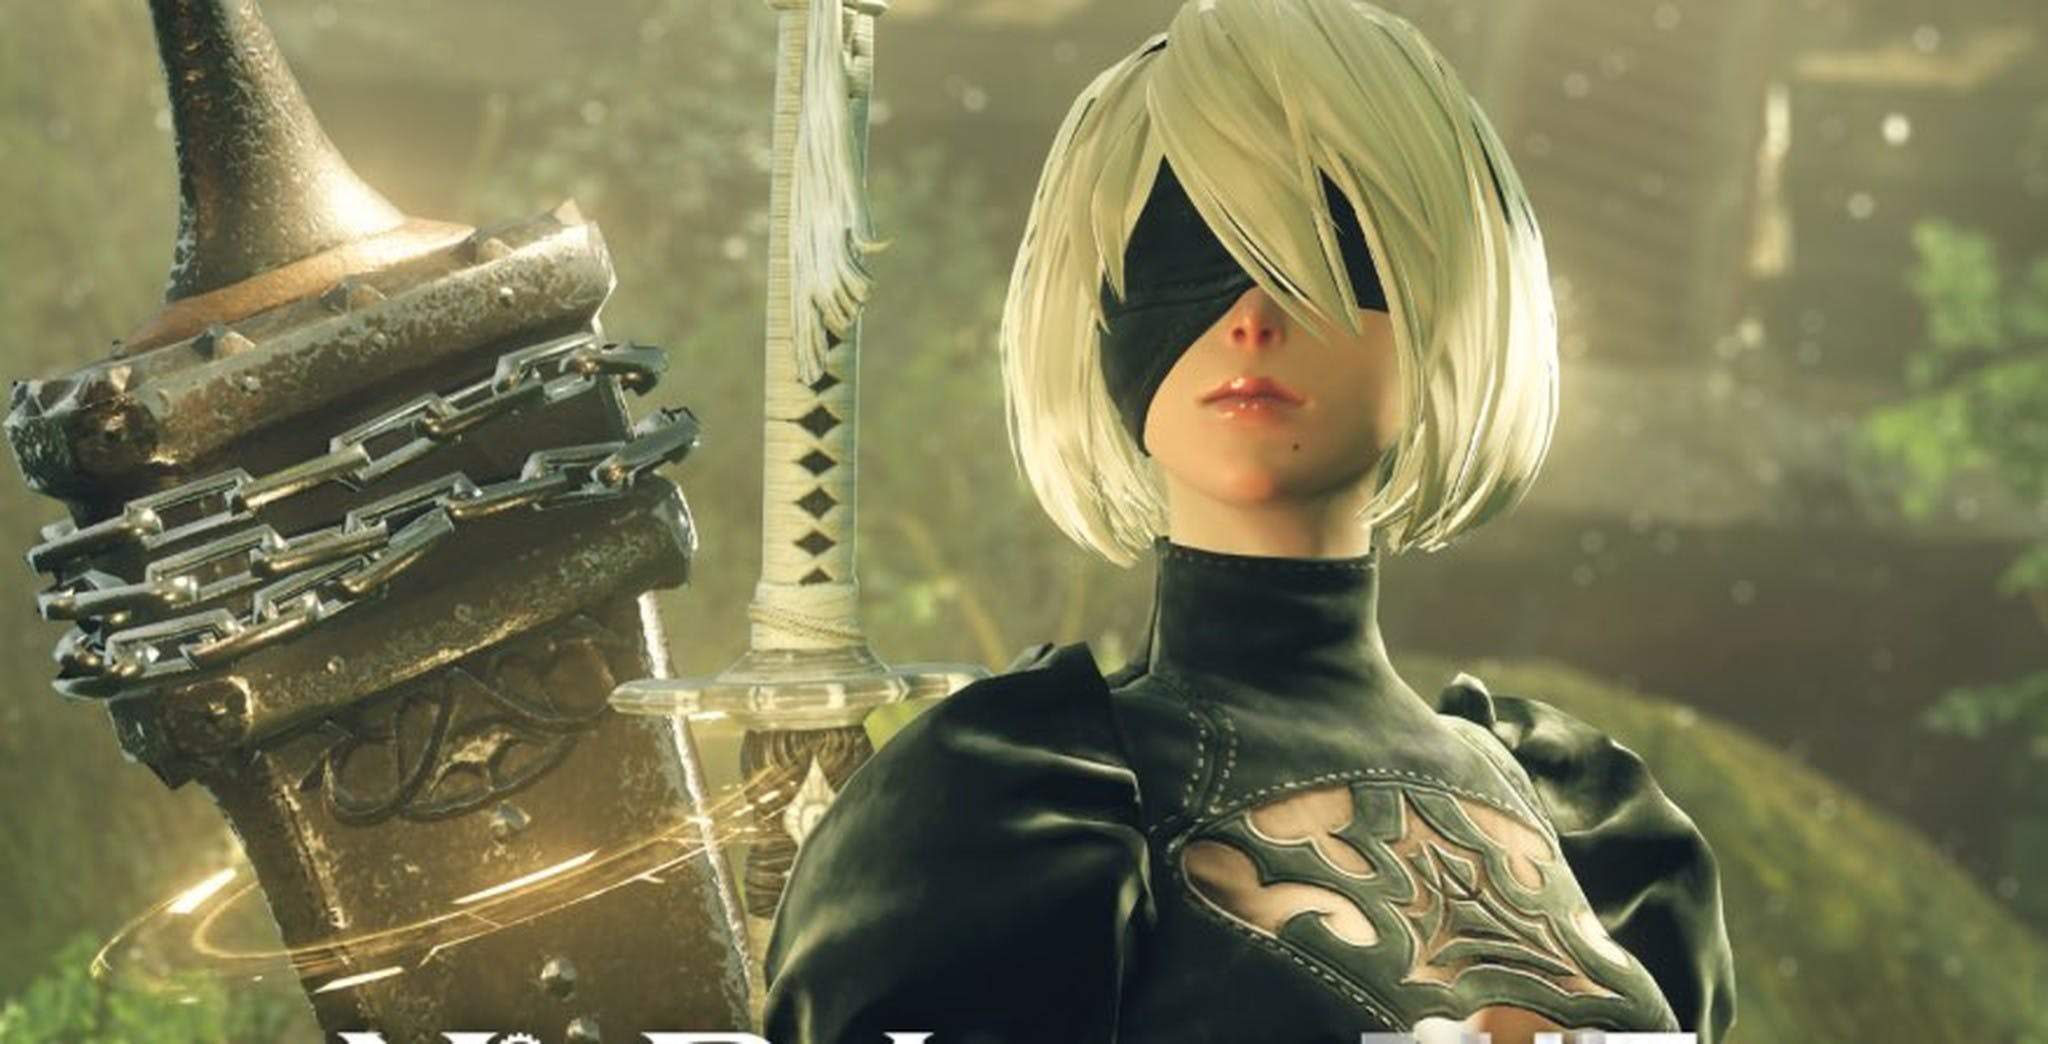 best video games of 2017 : nier automata 2b butthole